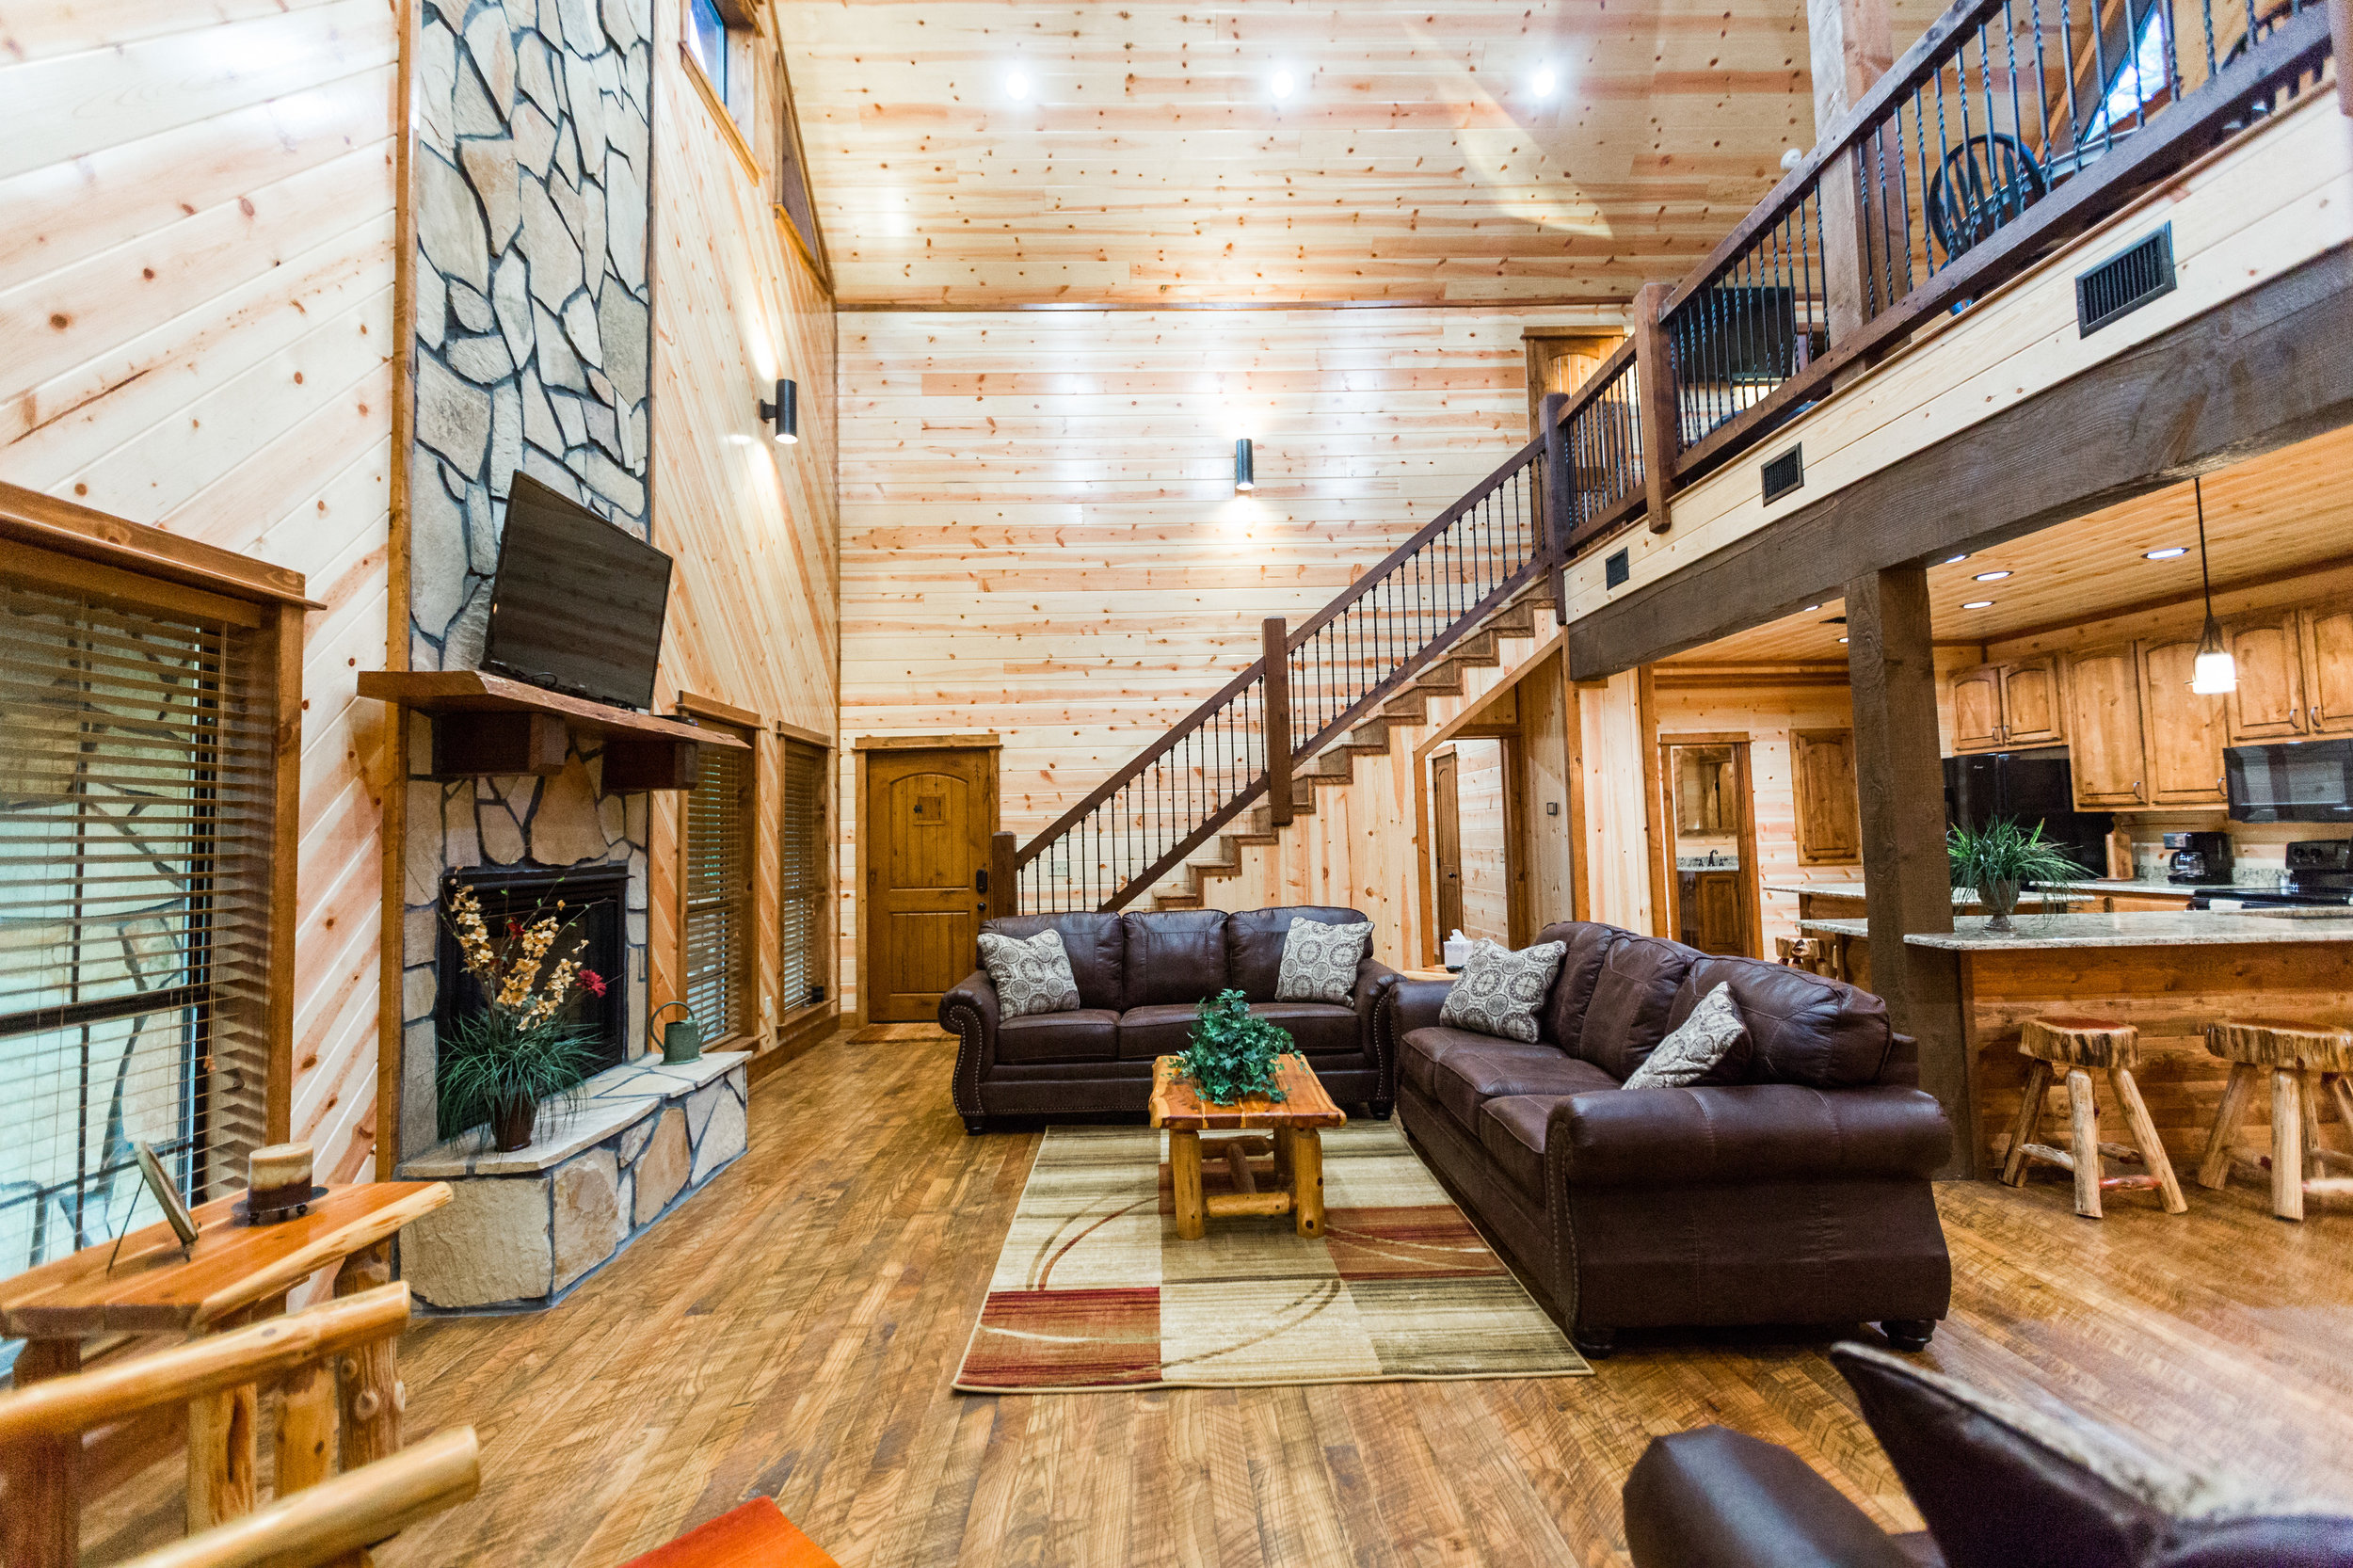 oklahoma luxury cabin rentals beavers bend vacation getaway hochatown mount fork river stephens gap lake ouachita mountains fireplace leather couches